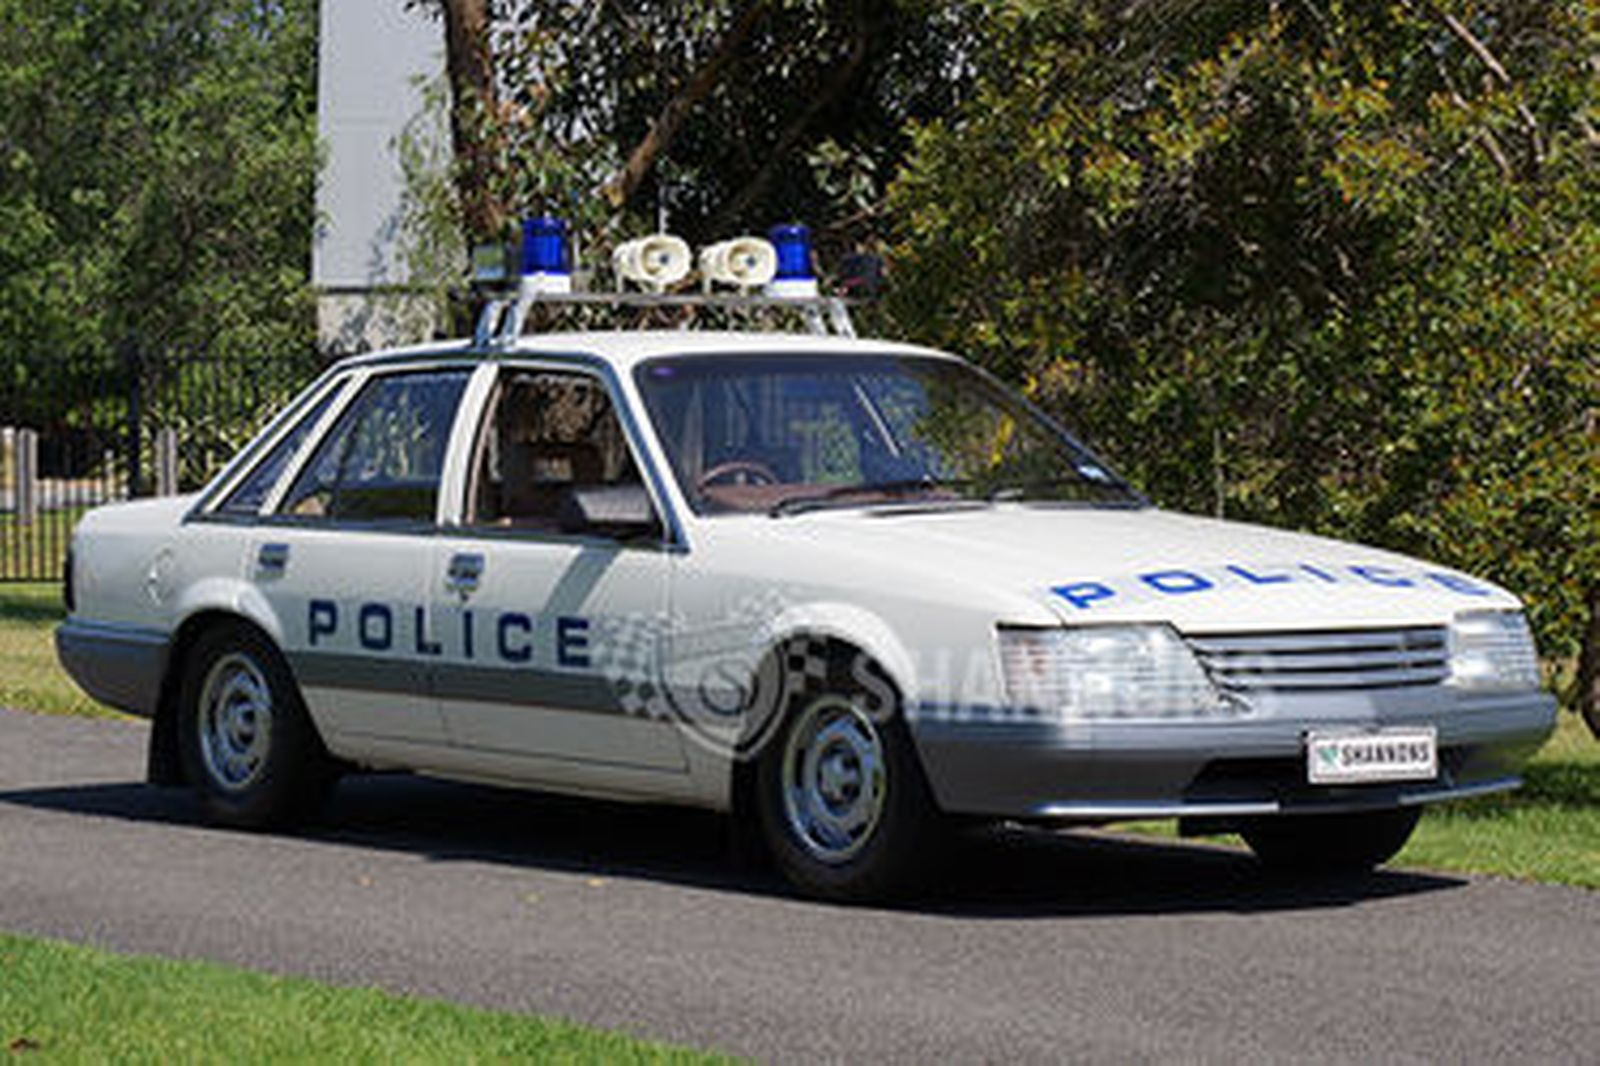 Ex Police Car Auctions >> Holden Vk Commodore Ex Police Car 308 V8 Sedan Auctions Lot 26